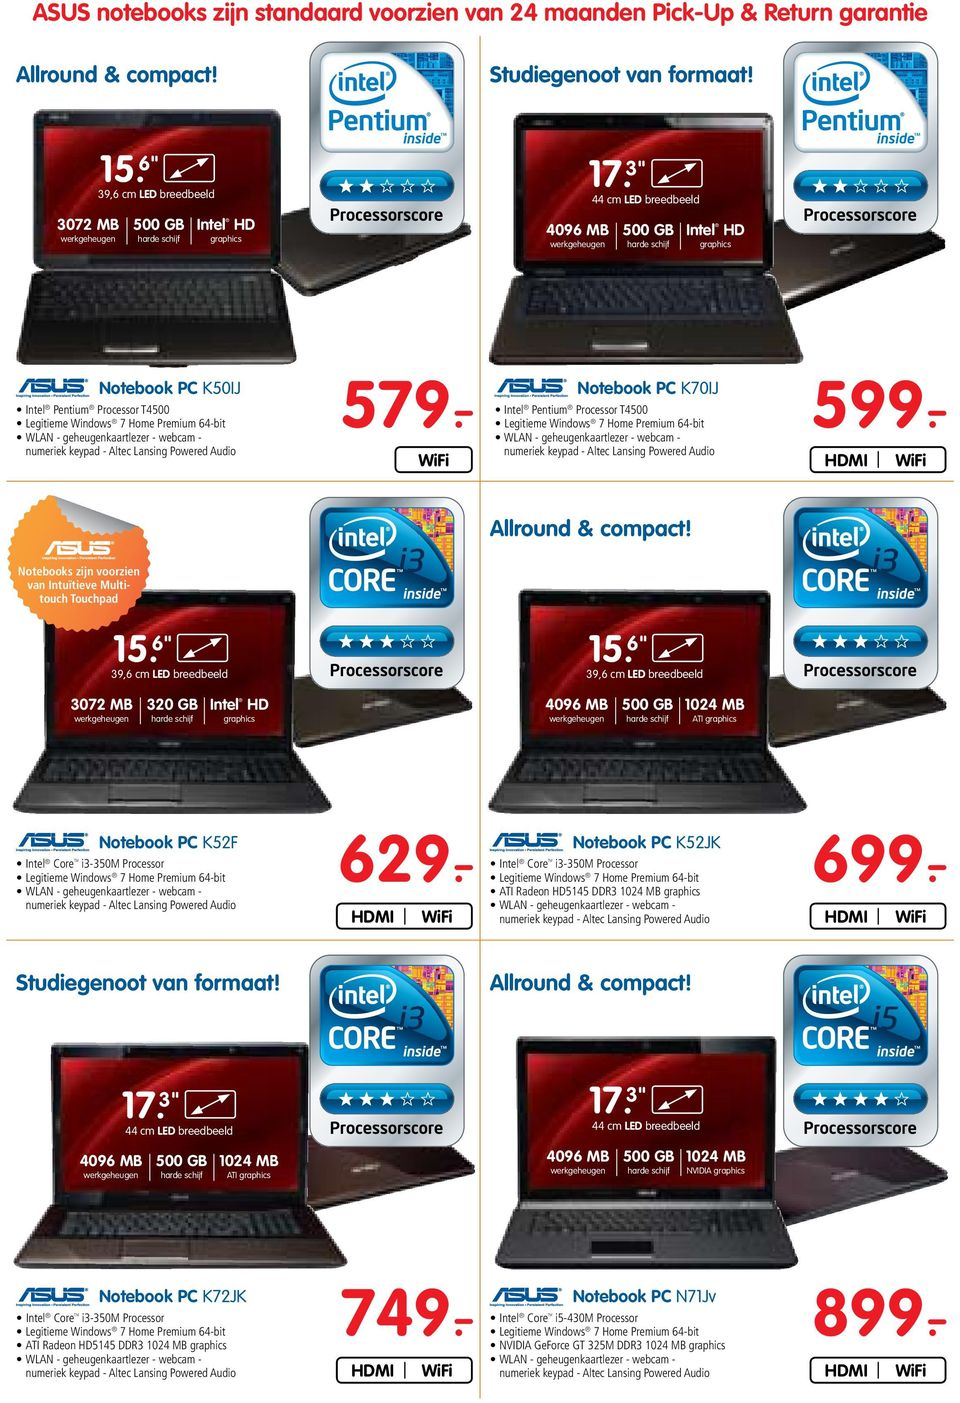 - Intel Pentium Processor T4500 WiFi Allround & compact!